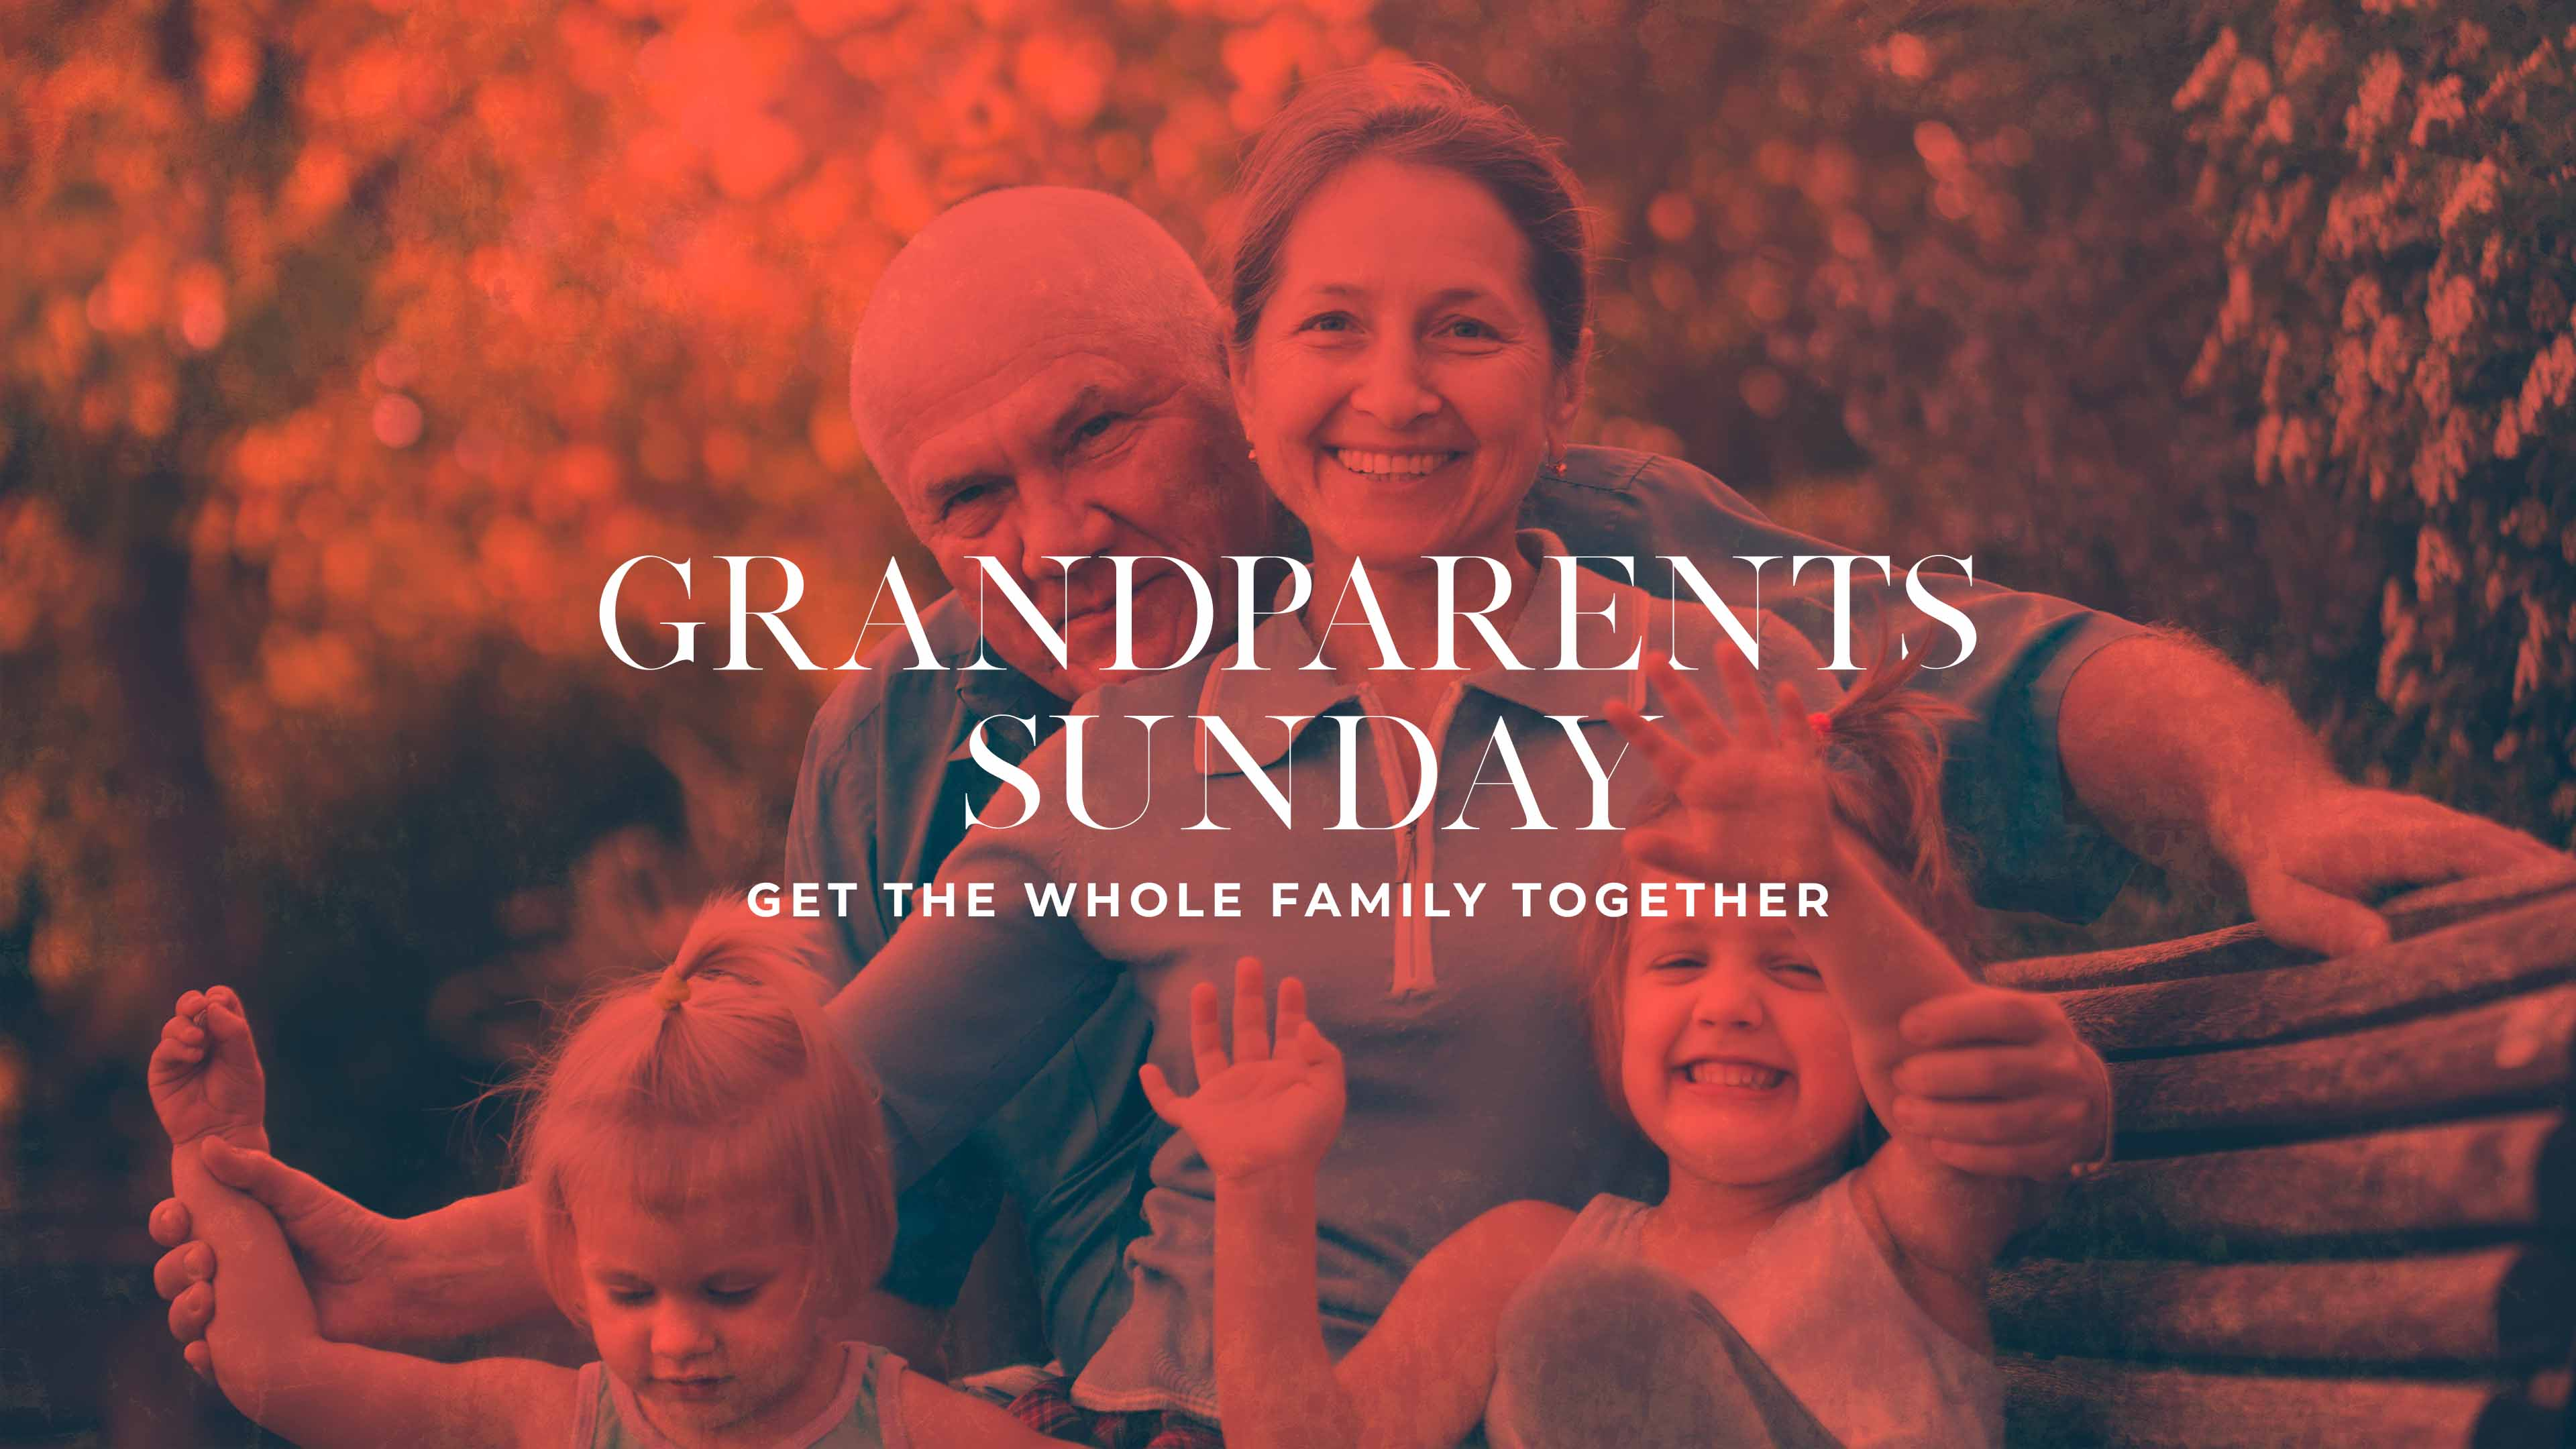 Grandparents Sunday Get The Whole Family Together Red Gradient image